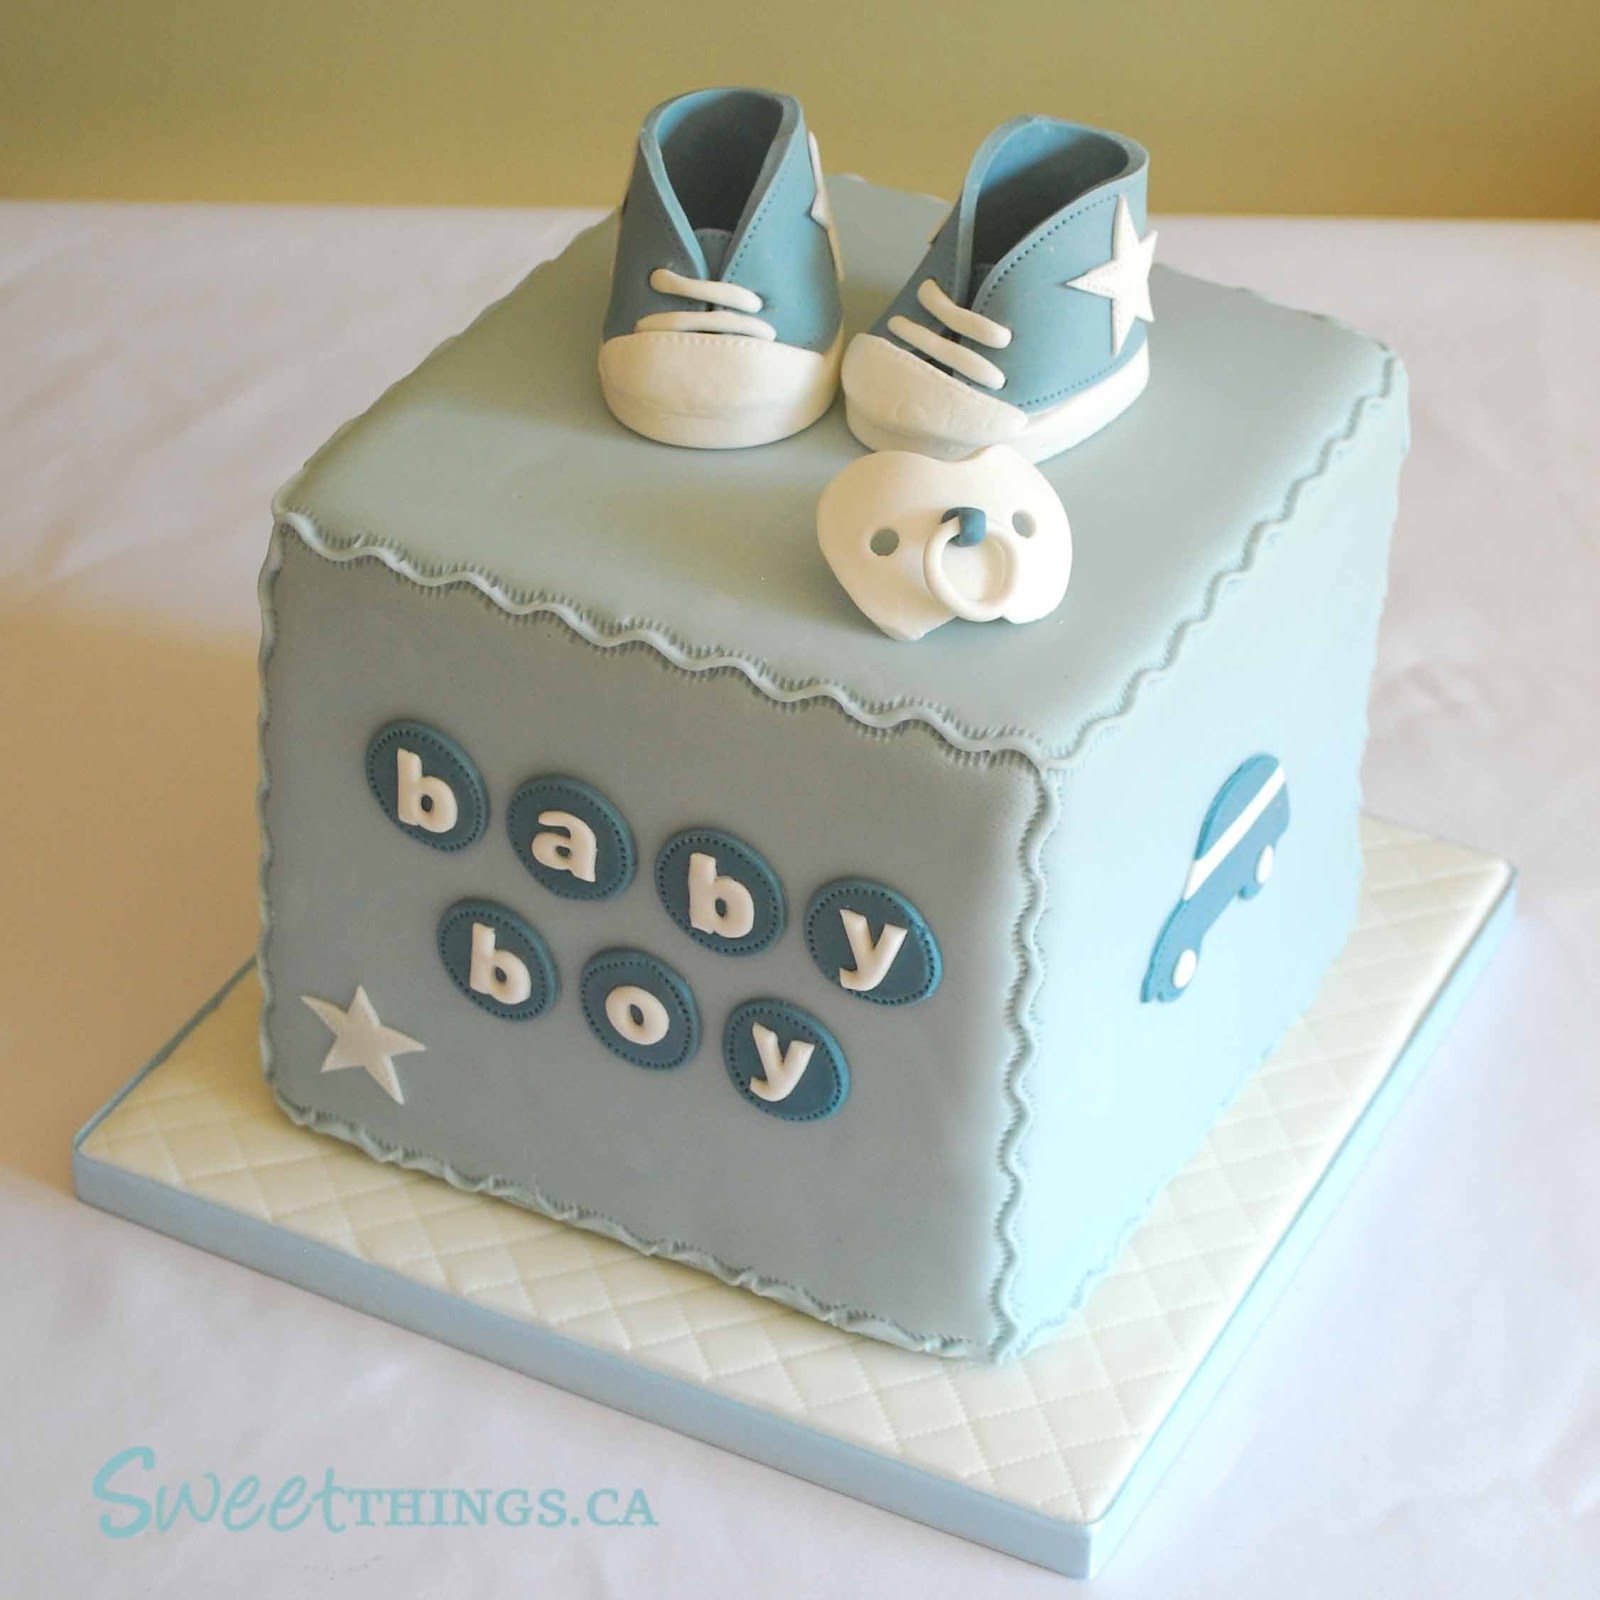 Cake Ideas For New Baby : SweetThings: Baby Boy Cake